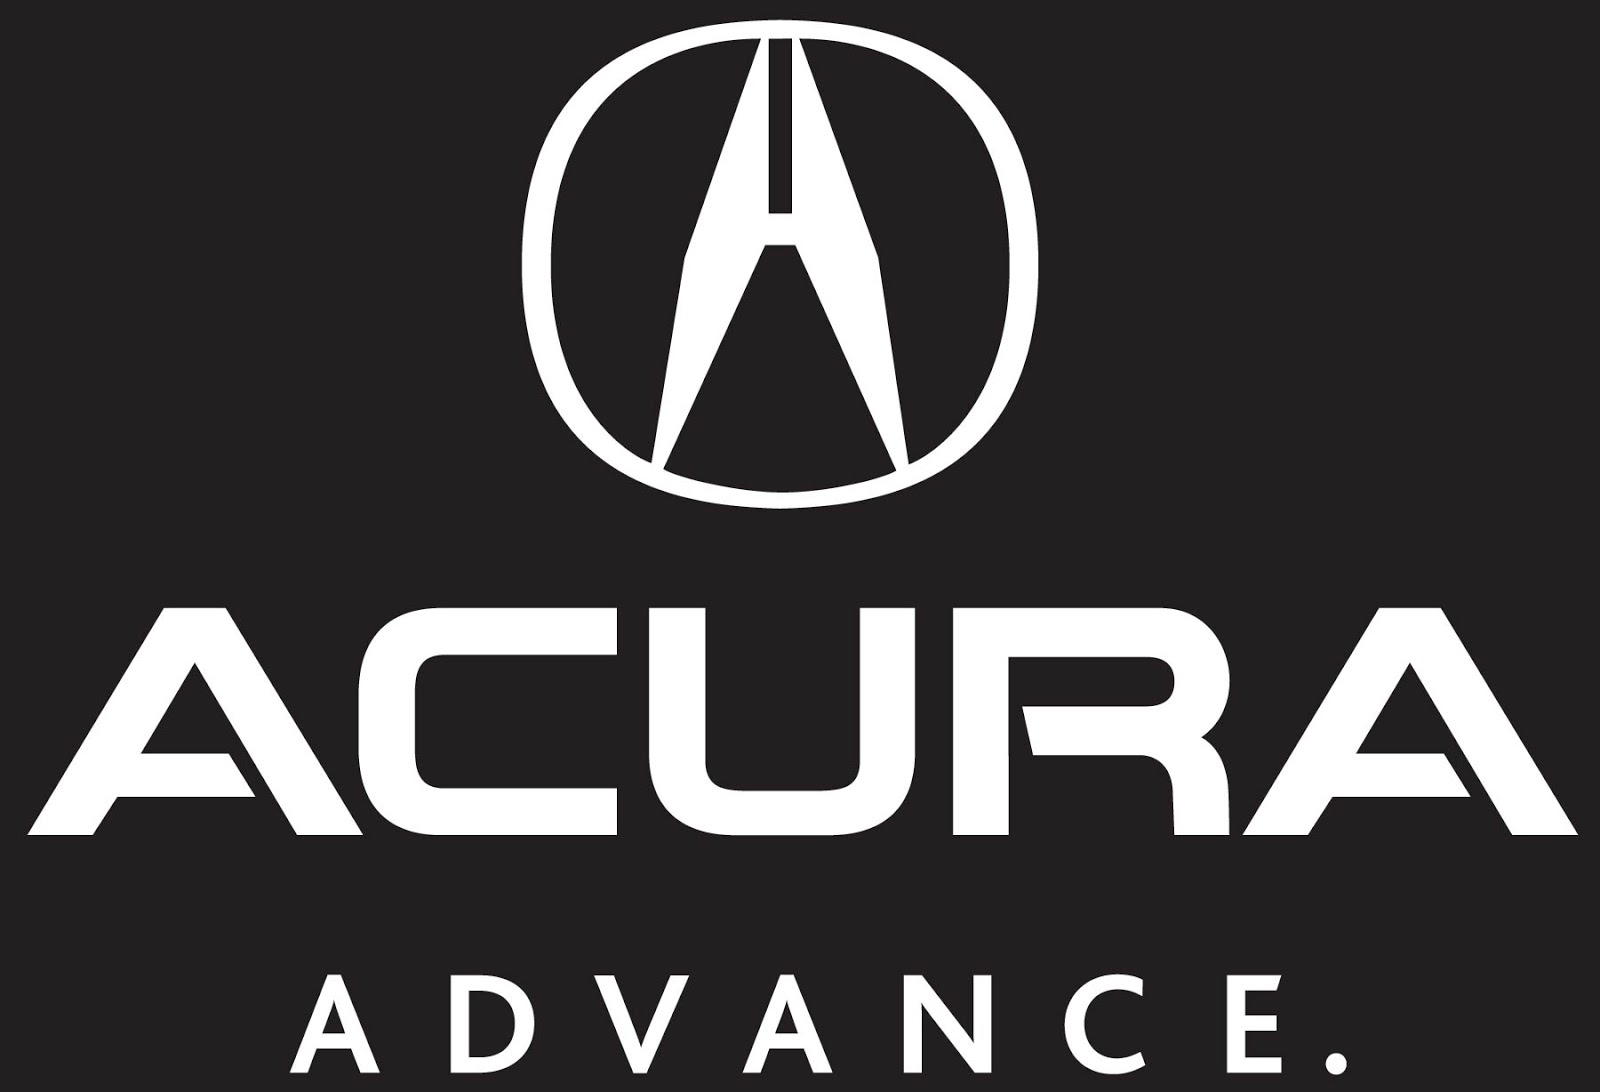 Acura Logo, Acura Car Symbol Meaning and History | Car Brand Names.com